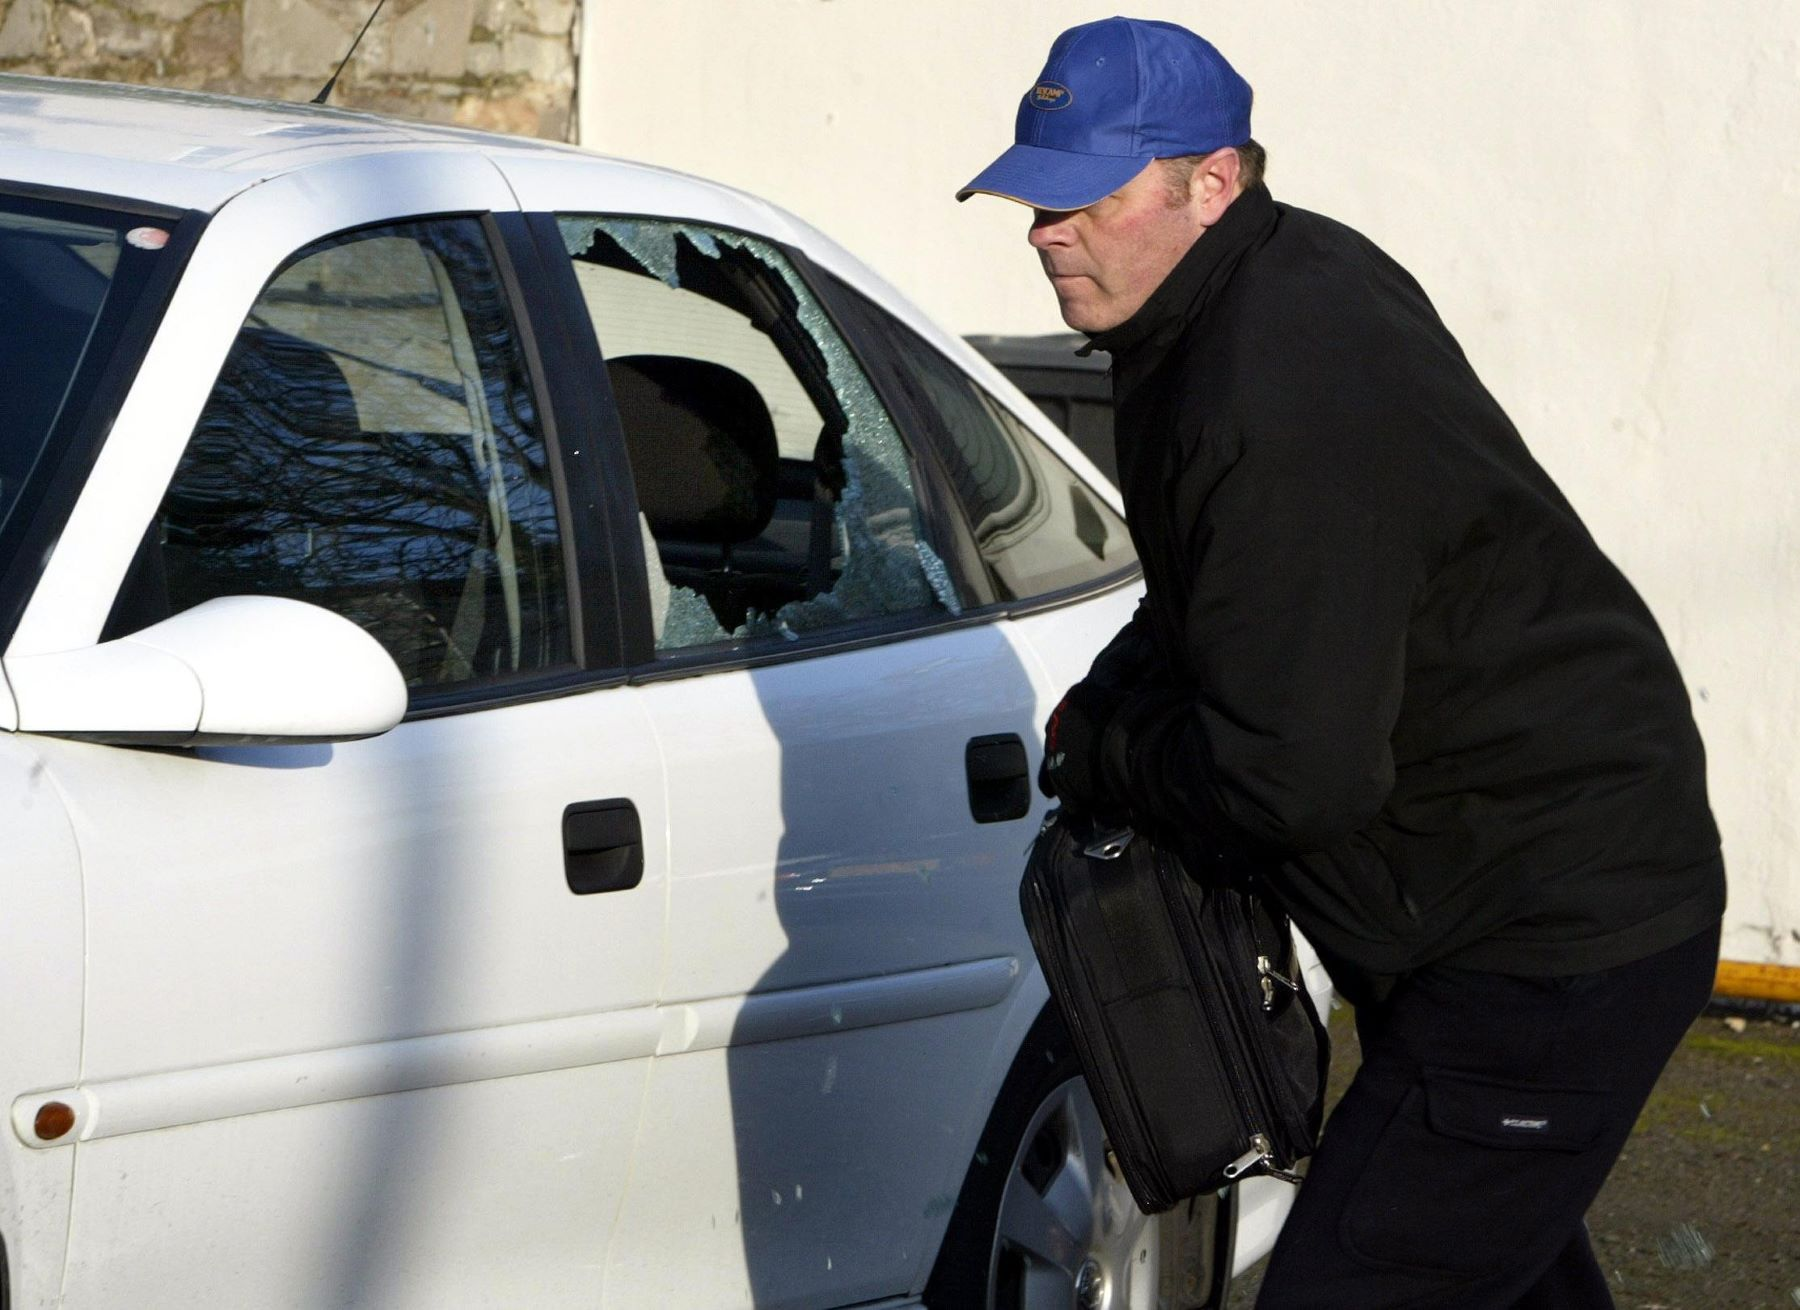 A car thief in a blue baseball cap breaking into a vehicle for a police demonstration